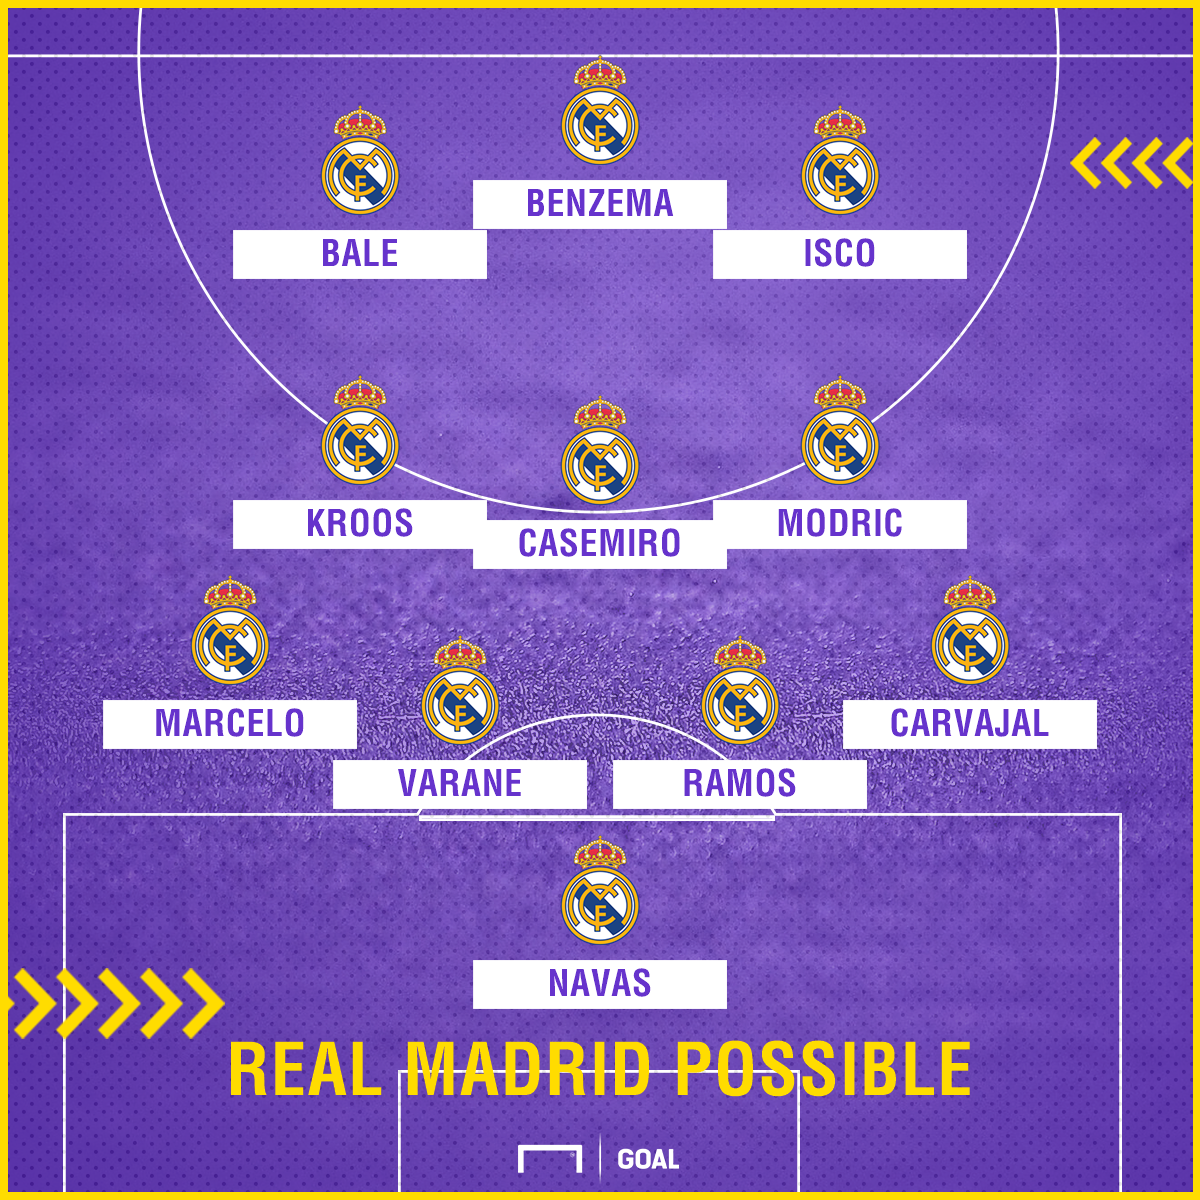 Real Madrid possible Depor